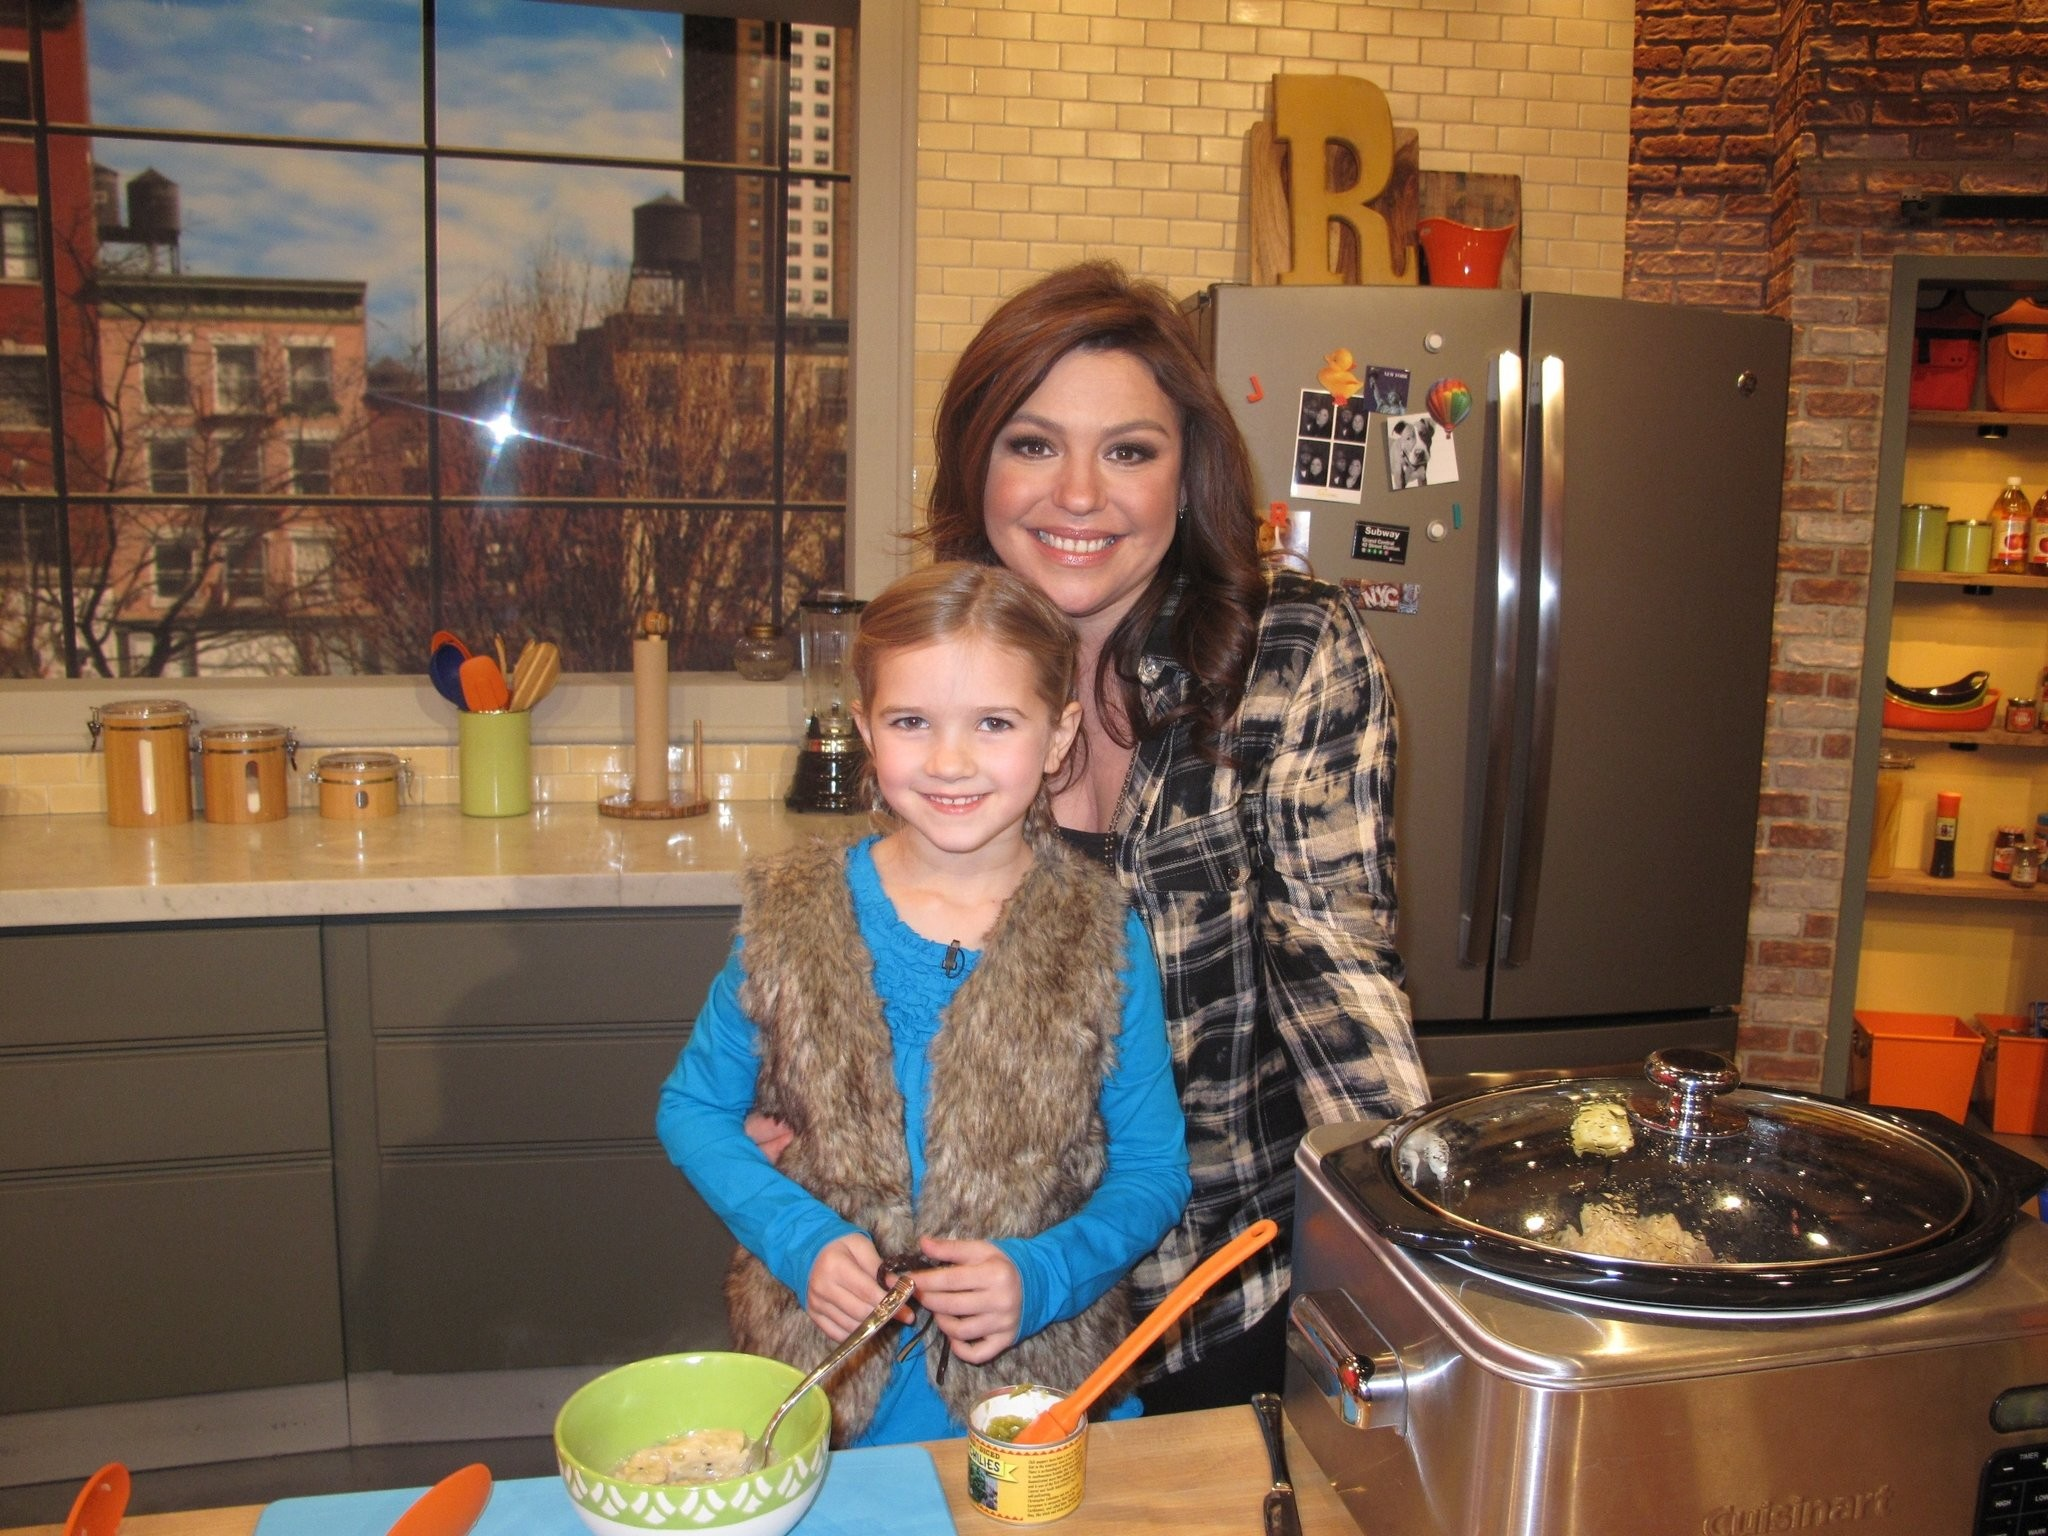 Boaz 7 Year Old Will Appear On The Rachael Ray Show Today After Winning Cooking Contest Al Com